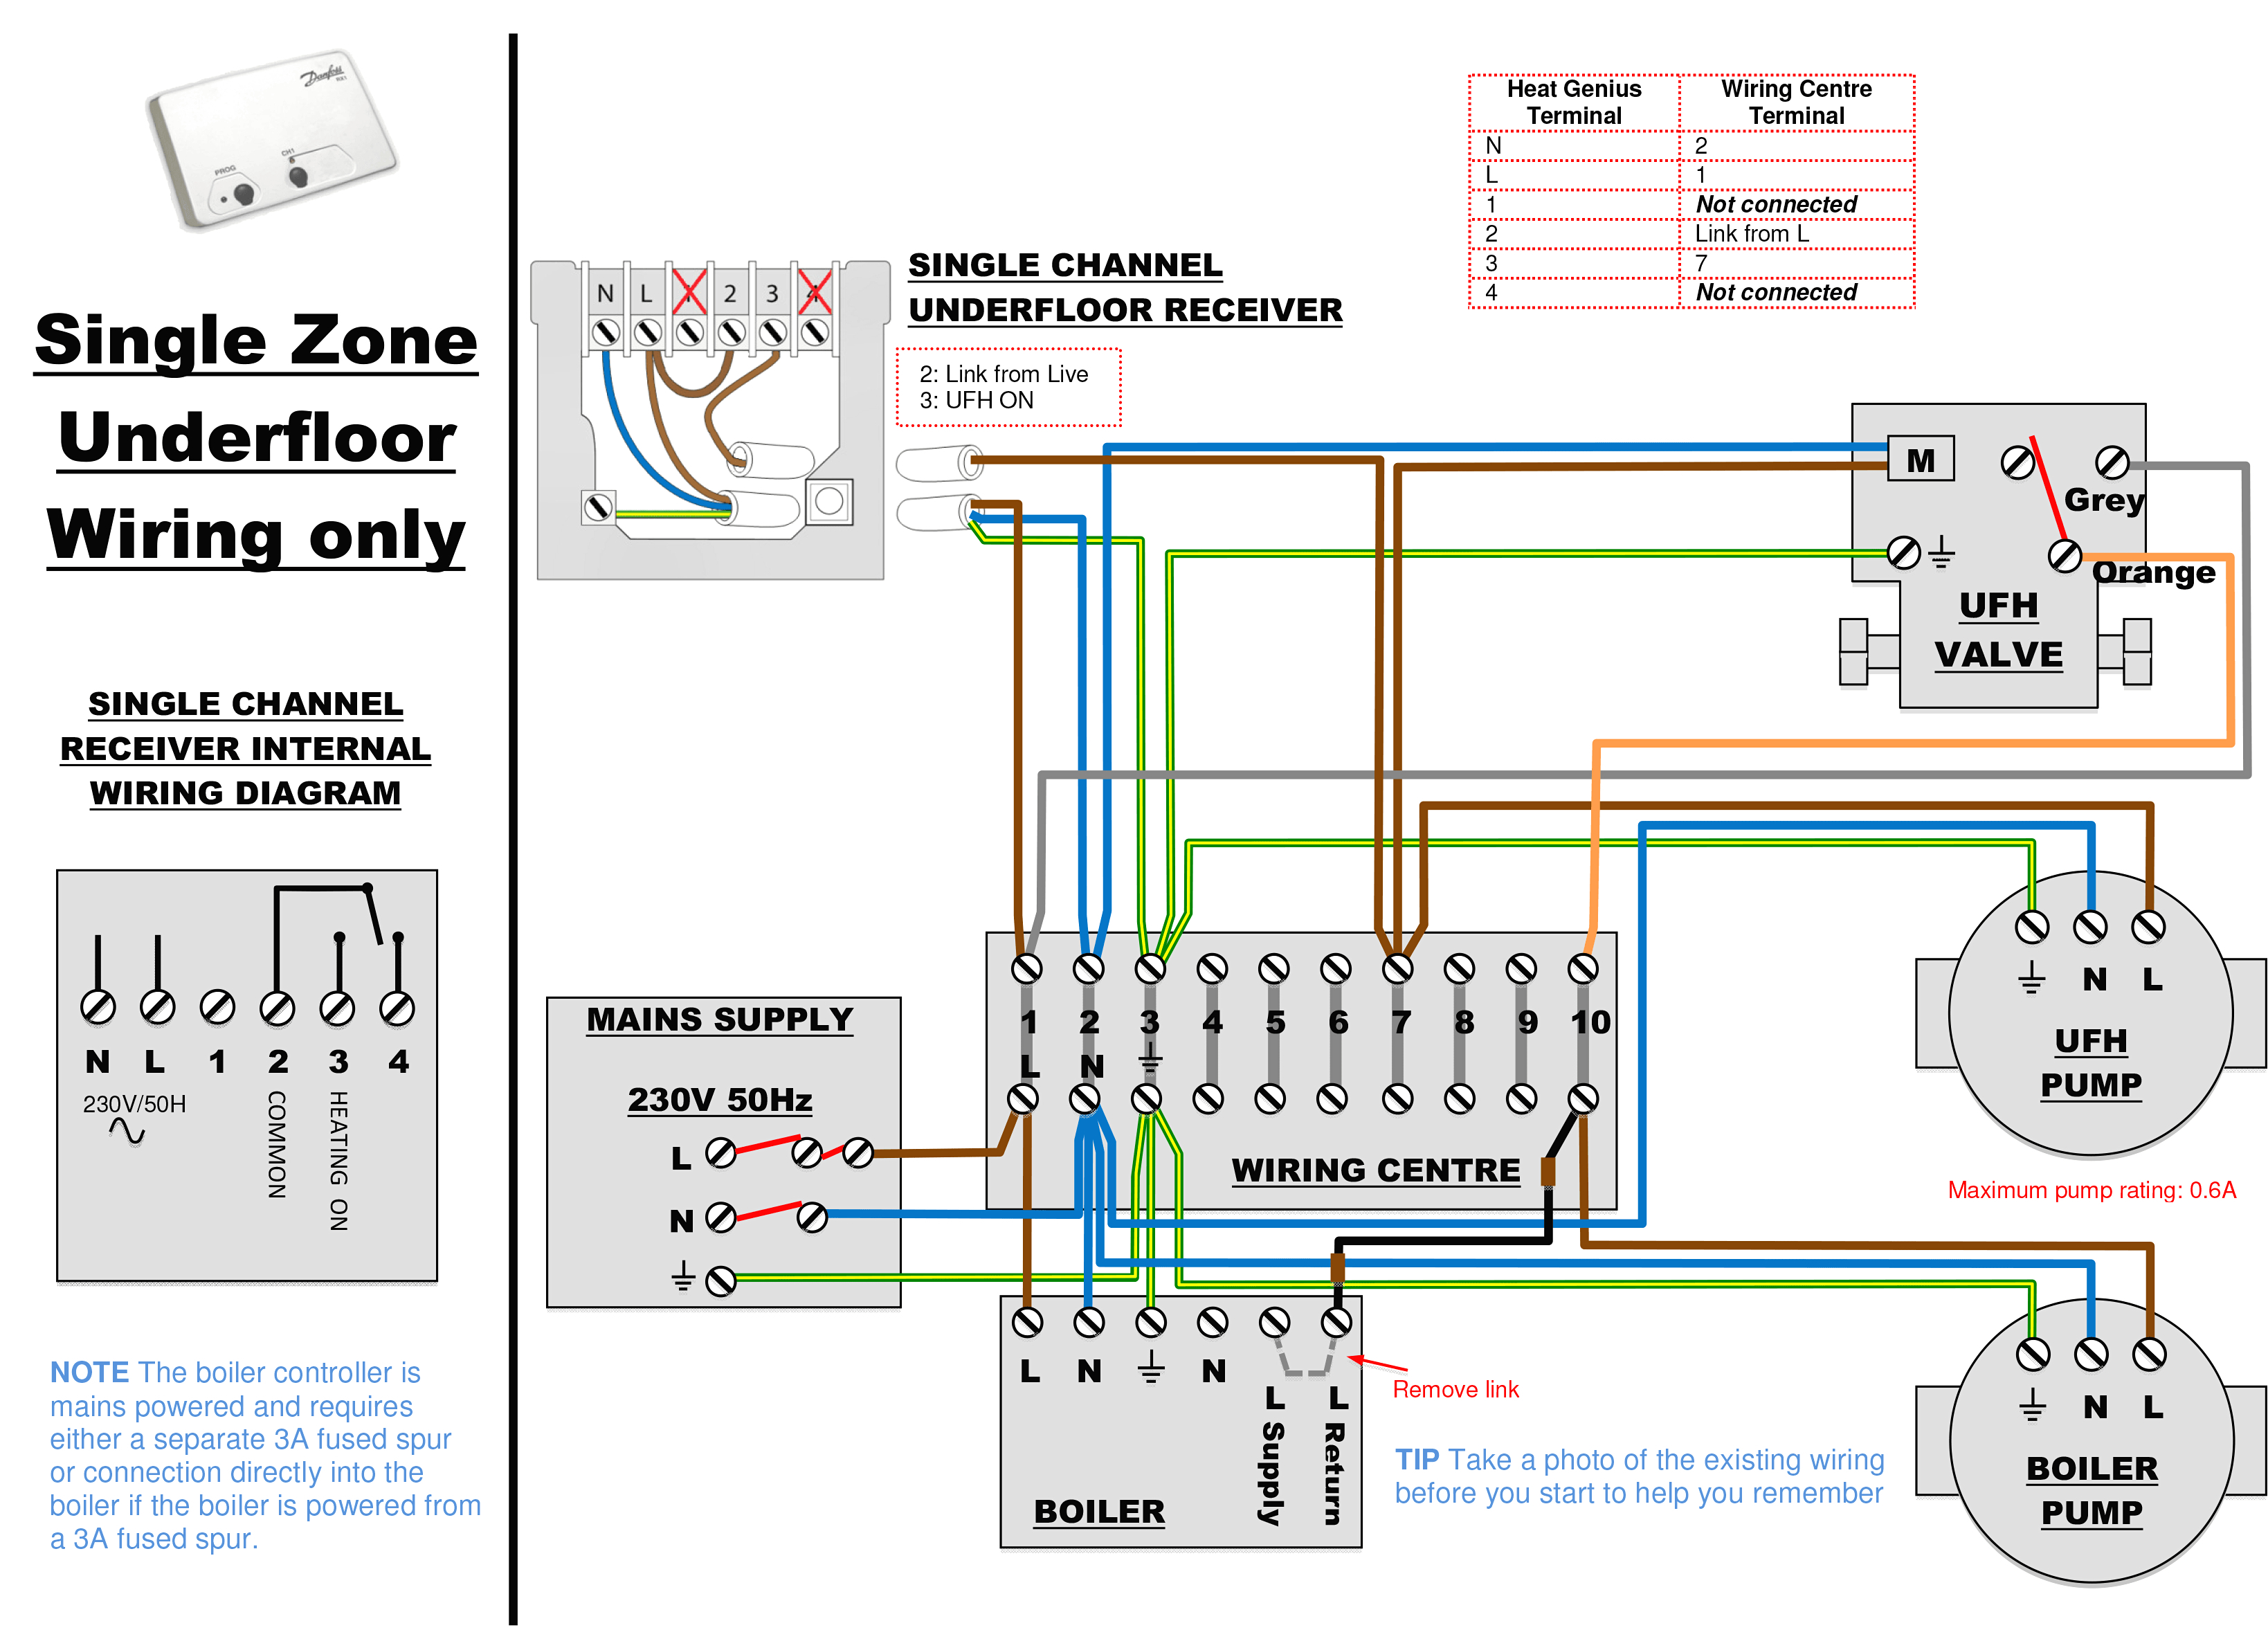 intermatic k4221c wiring diagram Collection-central boiler thermostat wiring diagram Download Hive Thermostat Wiring Diagram Fresh Boiler Wiring Diagram For 16-g